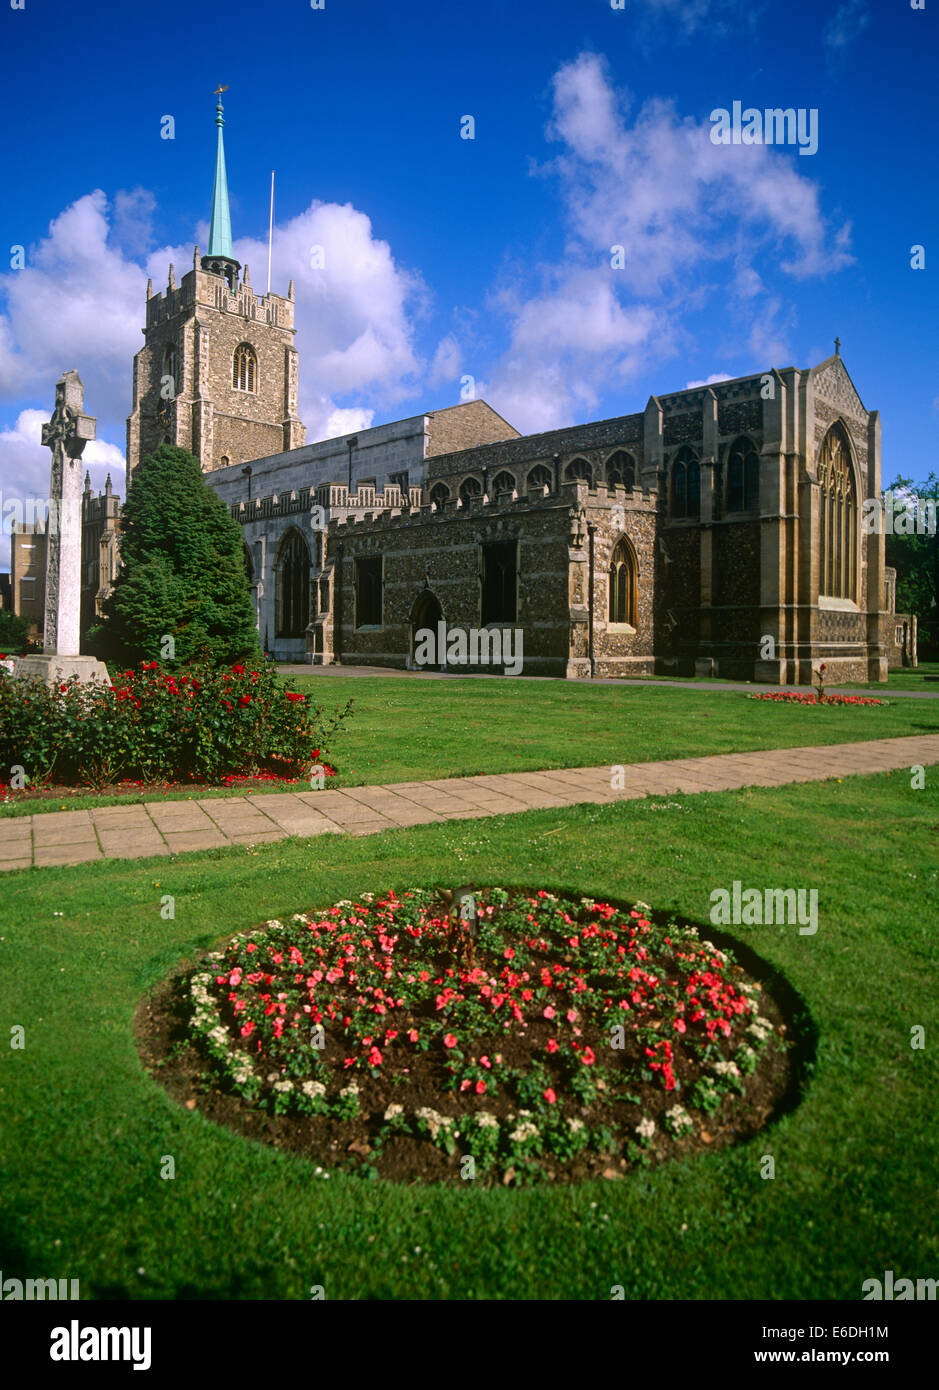 Cathedral chelmsford essex uk - Stock Image